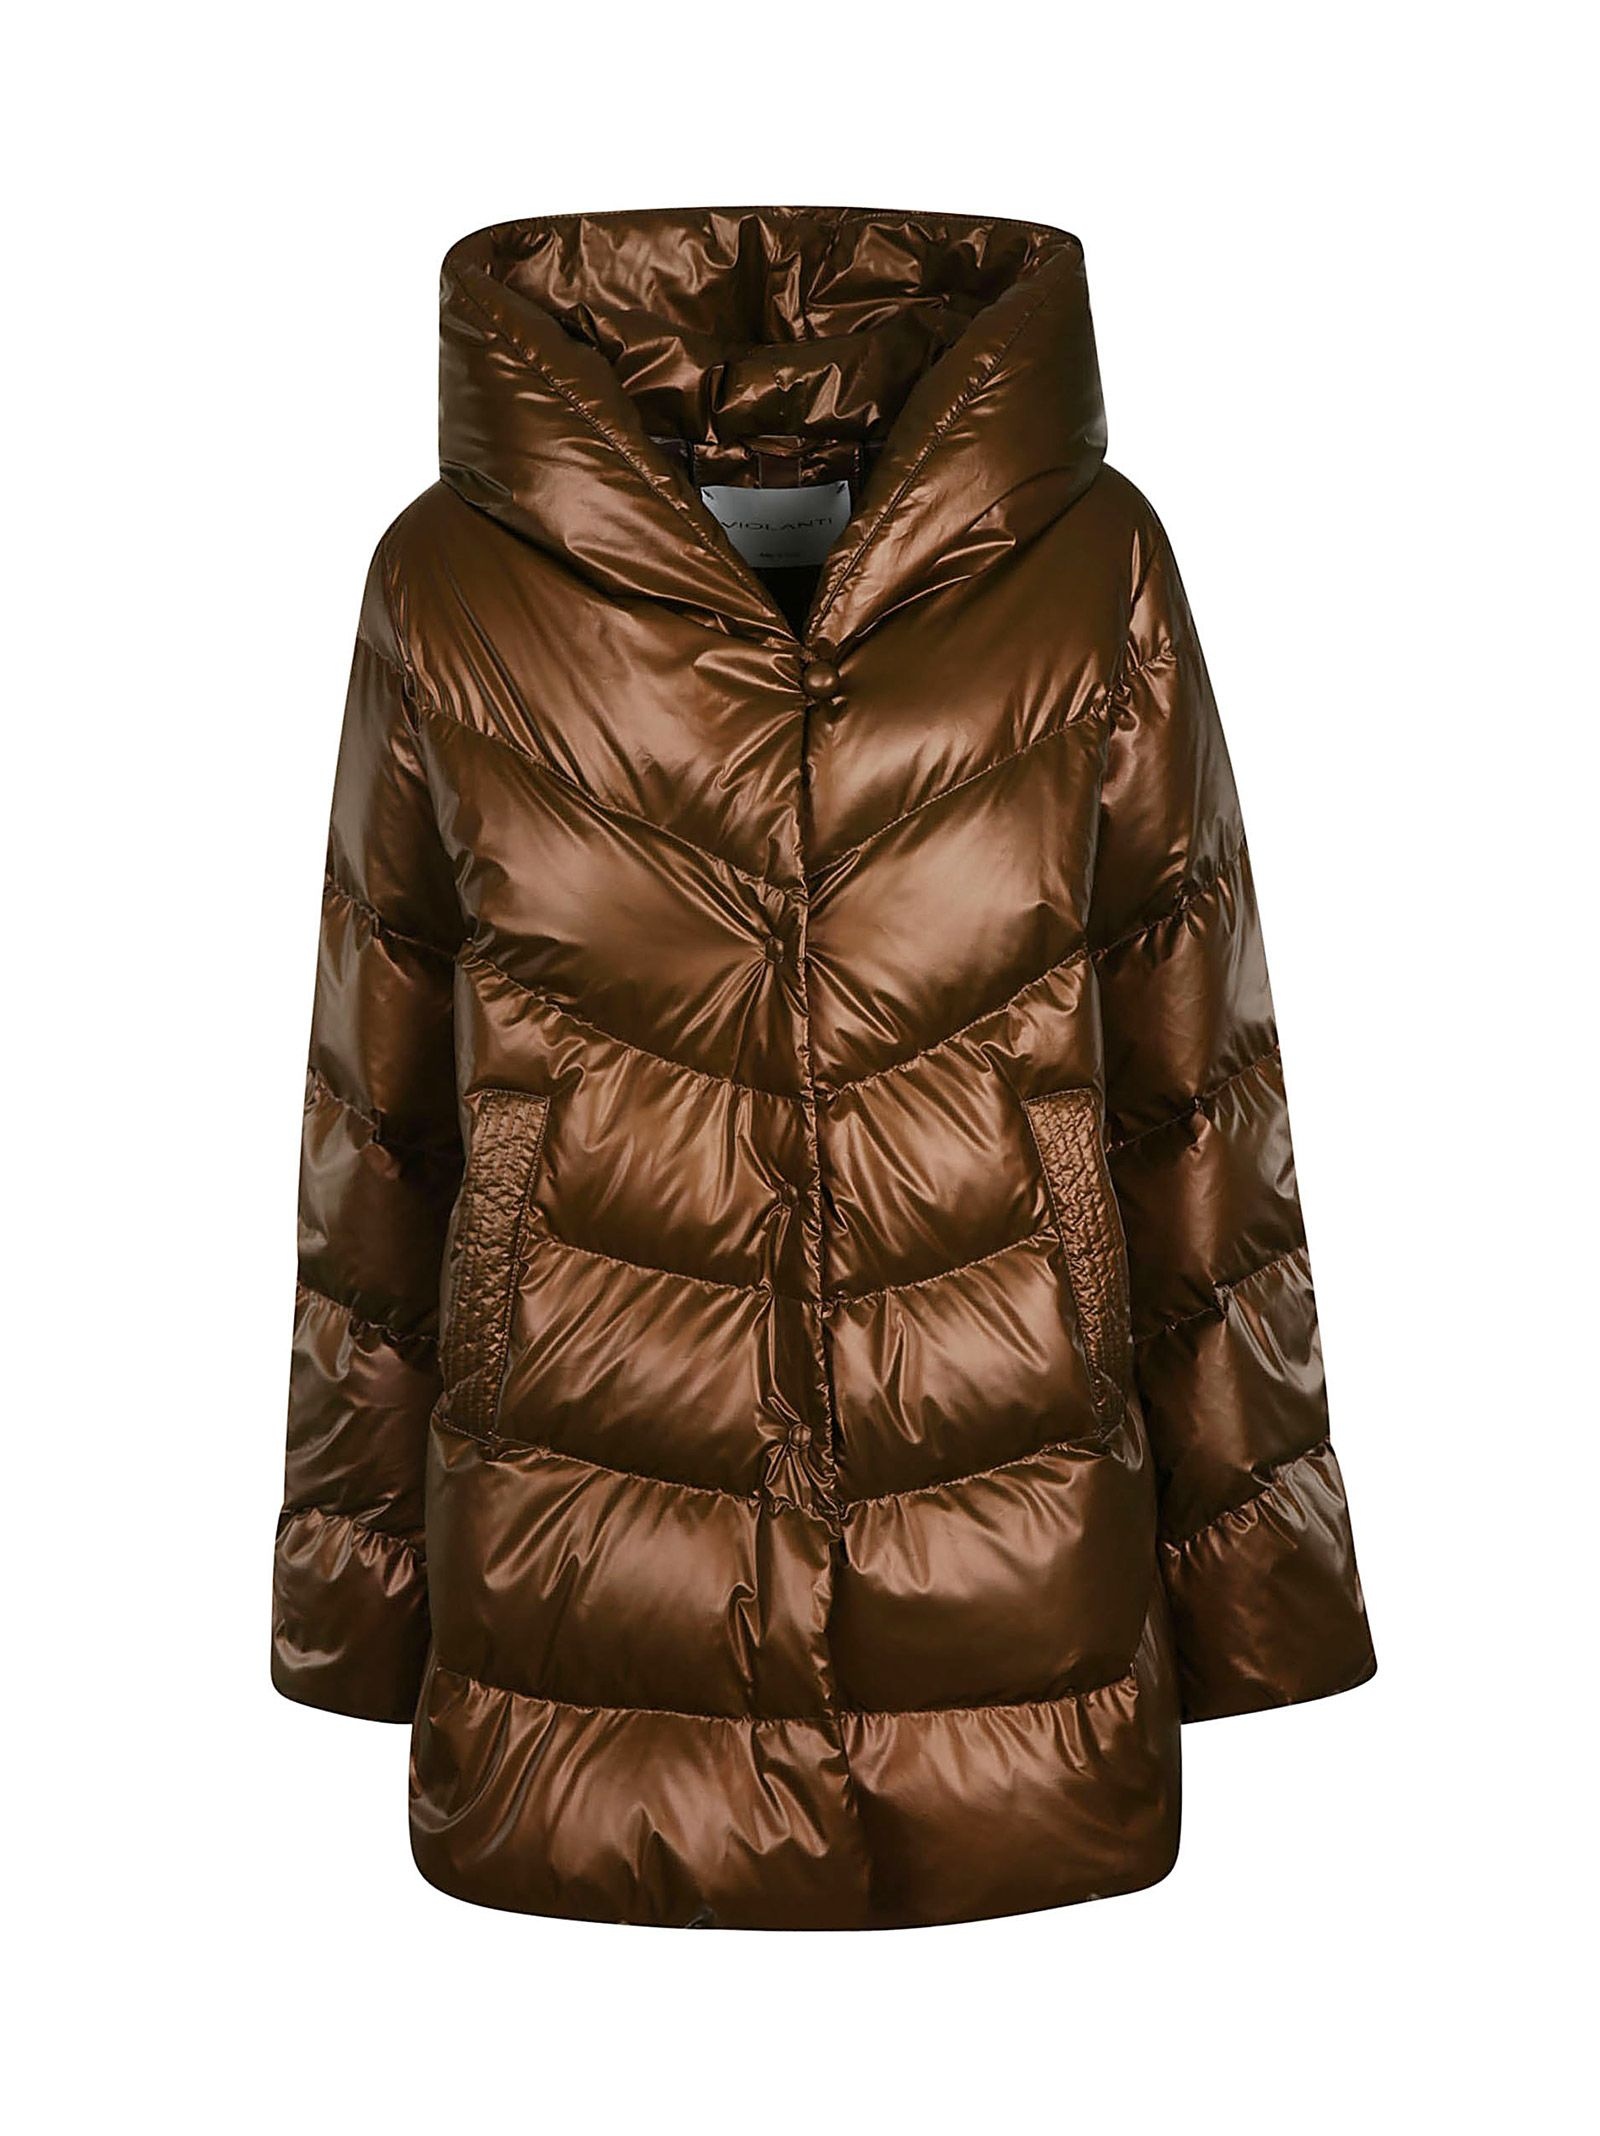 VIOLANTI Button-Up Padded Jacket in Brown